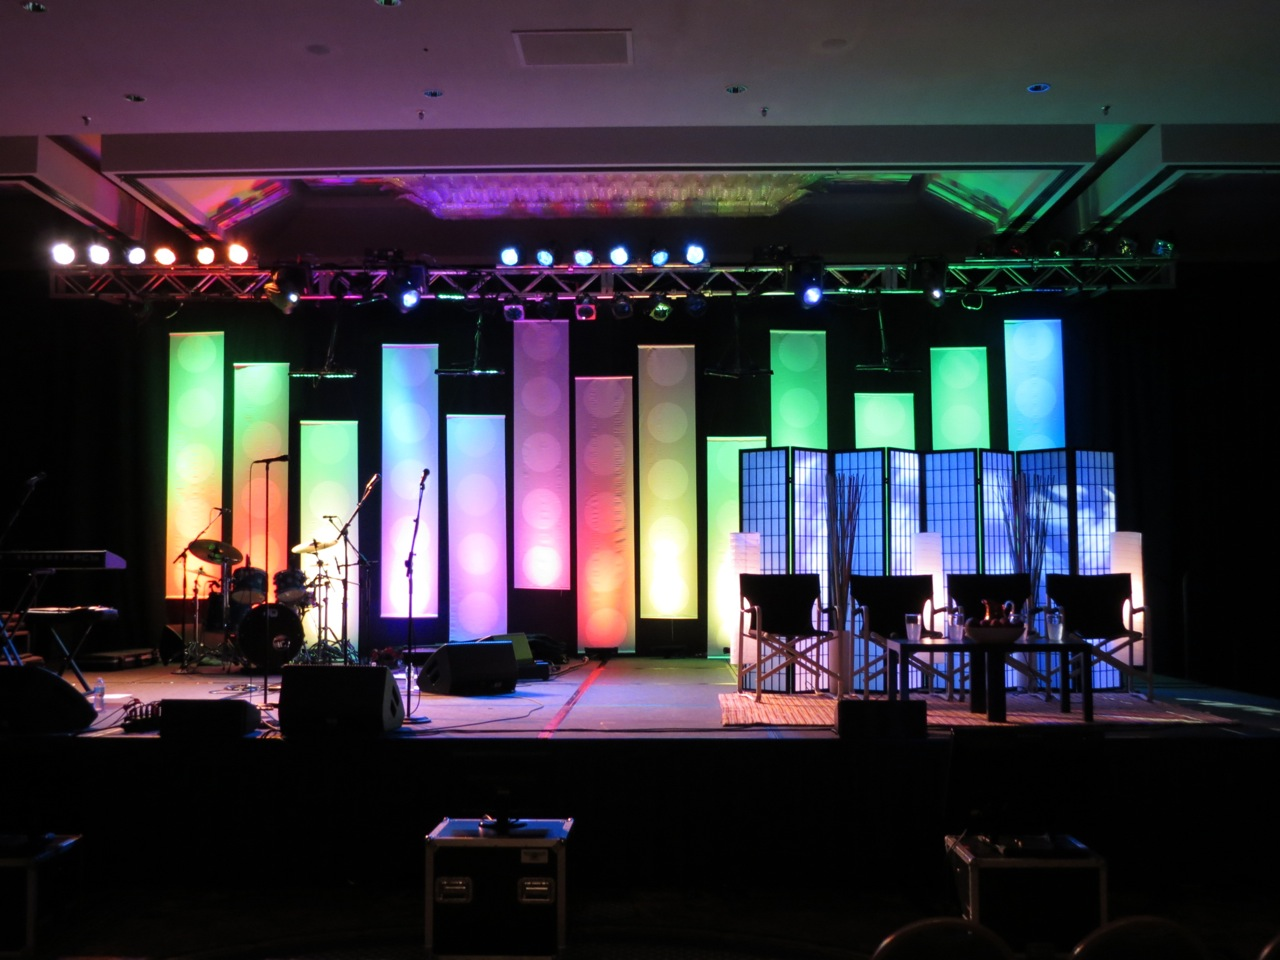 dot banners church stage design ideas - Stage Design Ideas